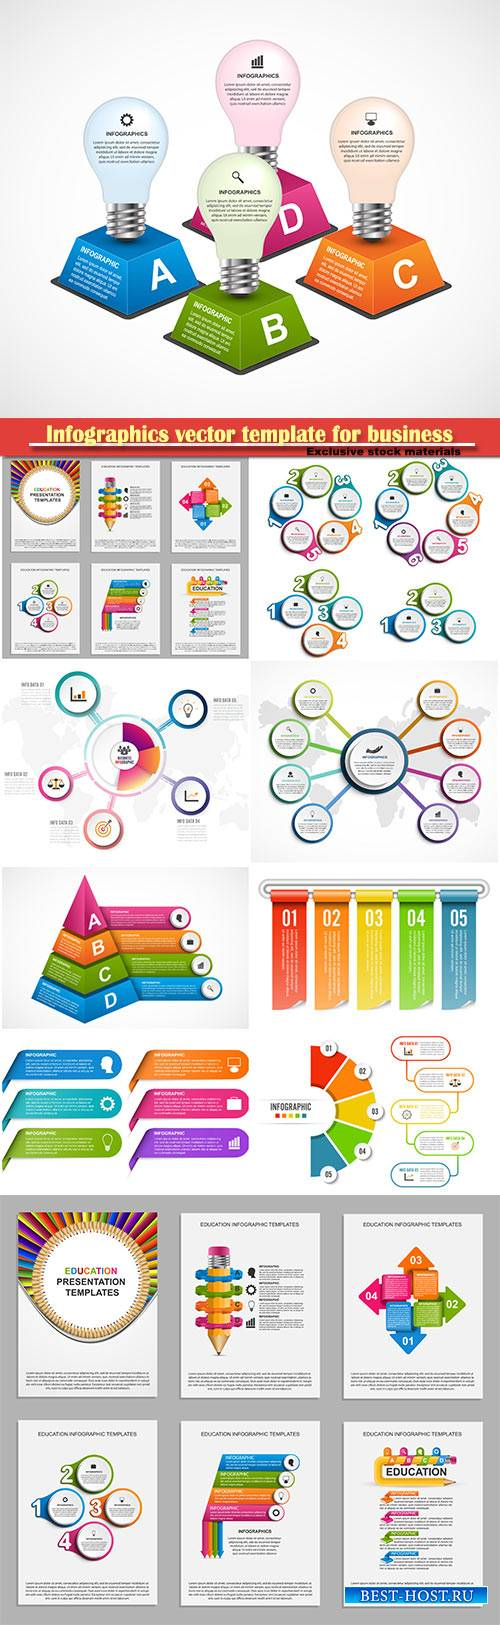 Infographics vector template for business presentations or information banner # 97